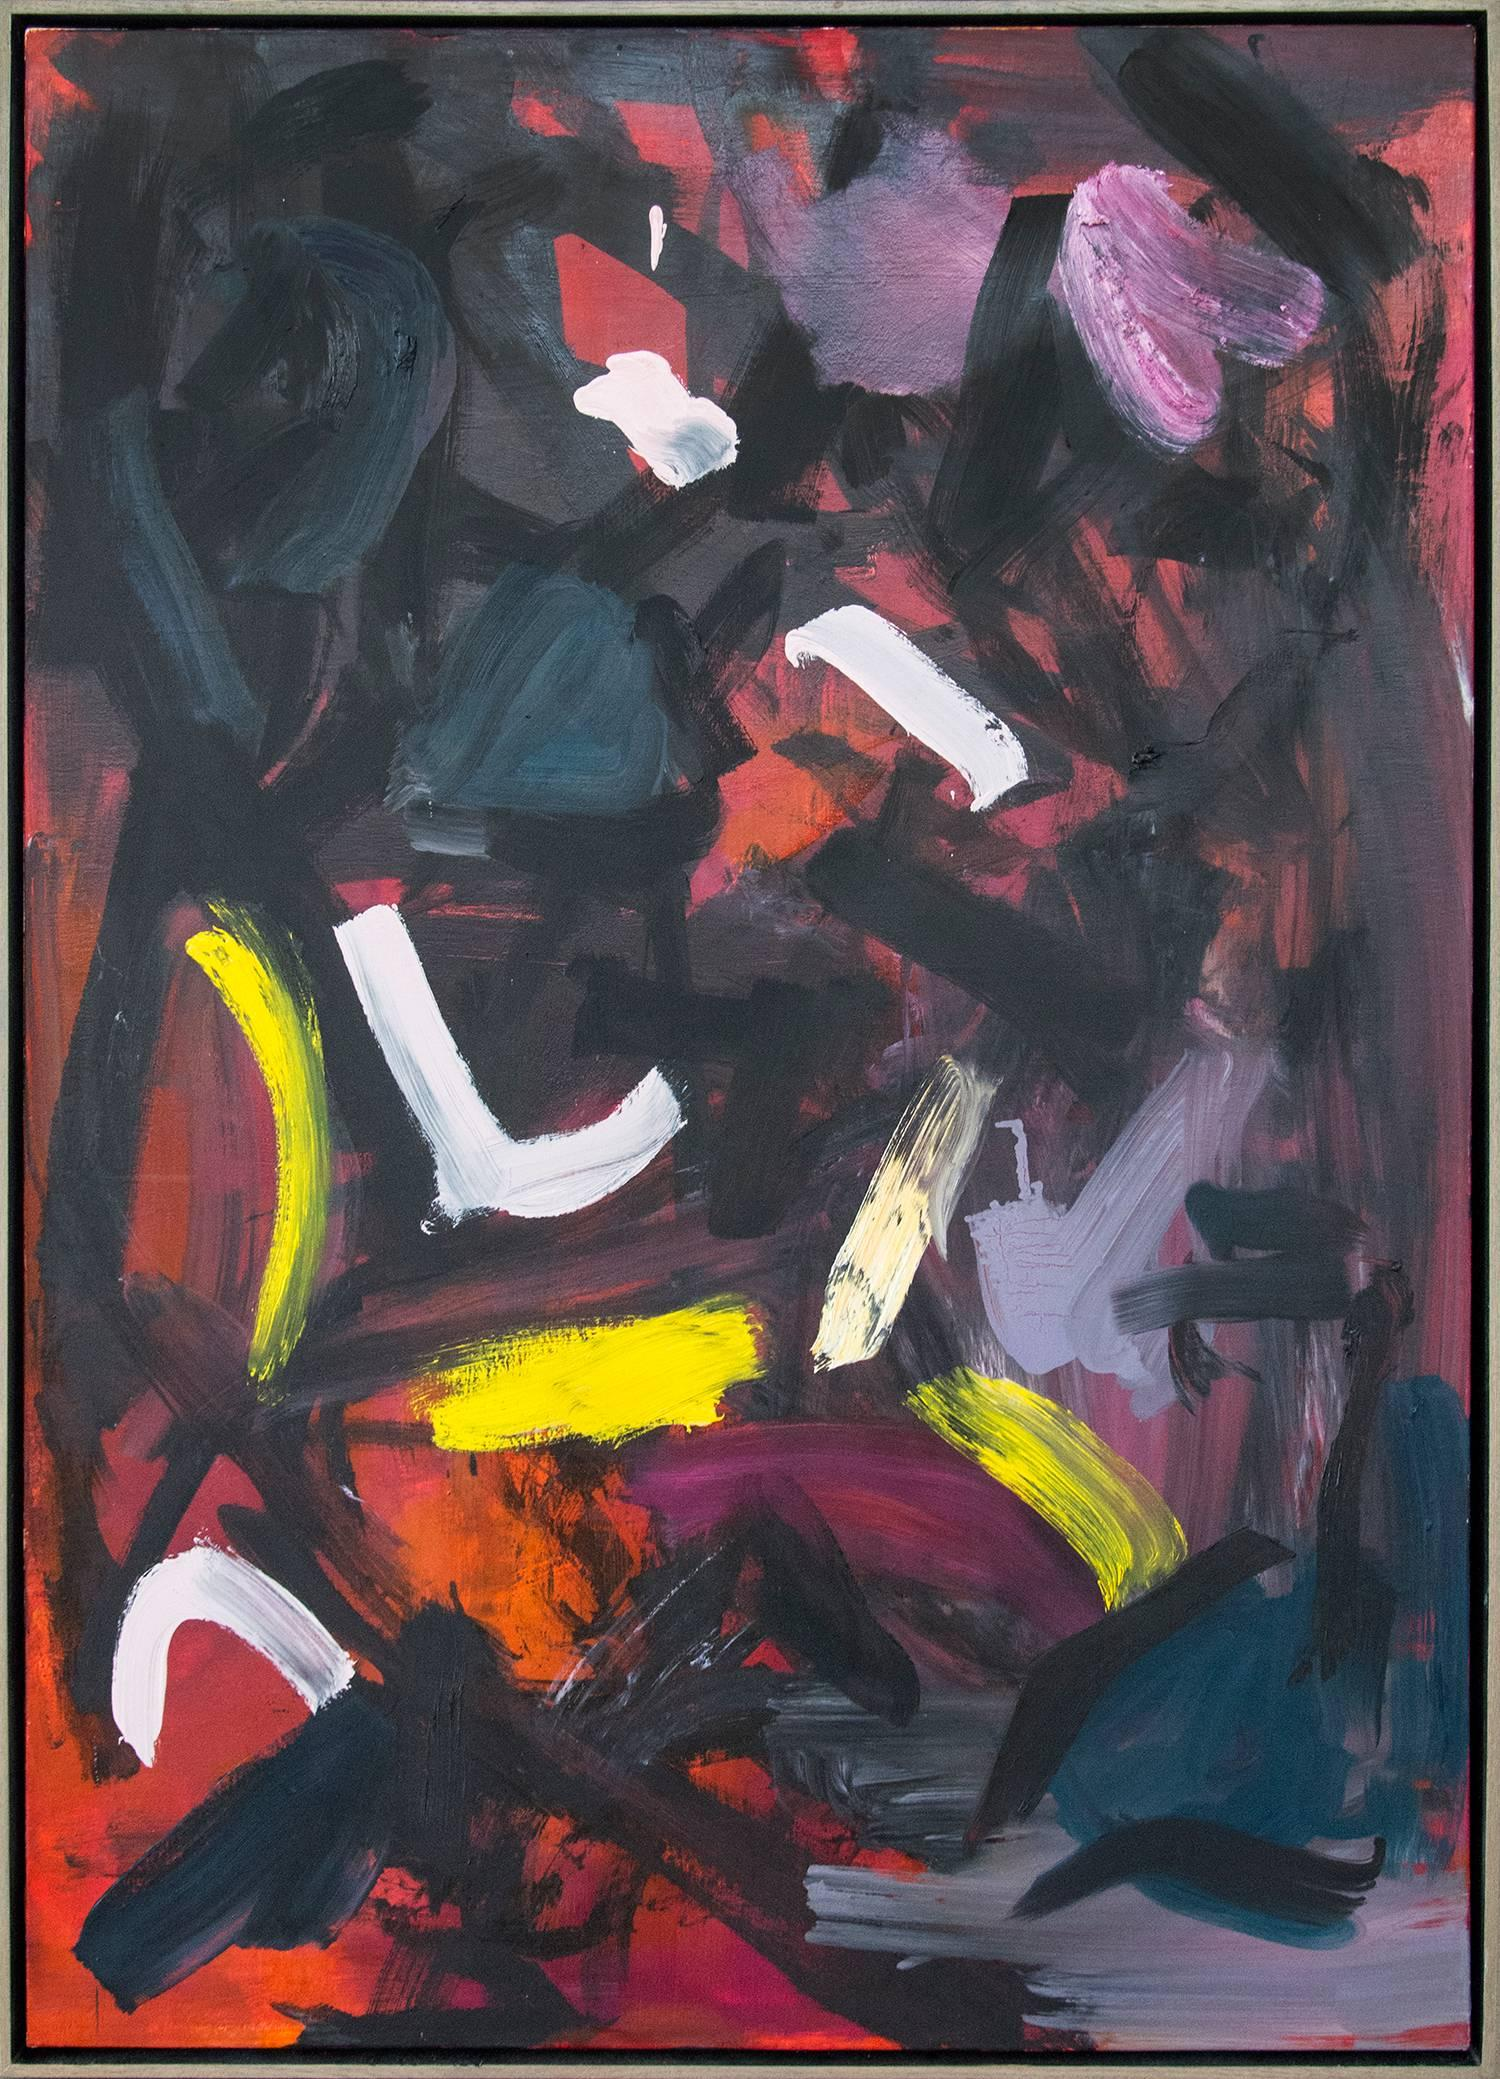 Ouvert No 48 - bold, black, yellow, red, pink, gestural abstract oil on canvas